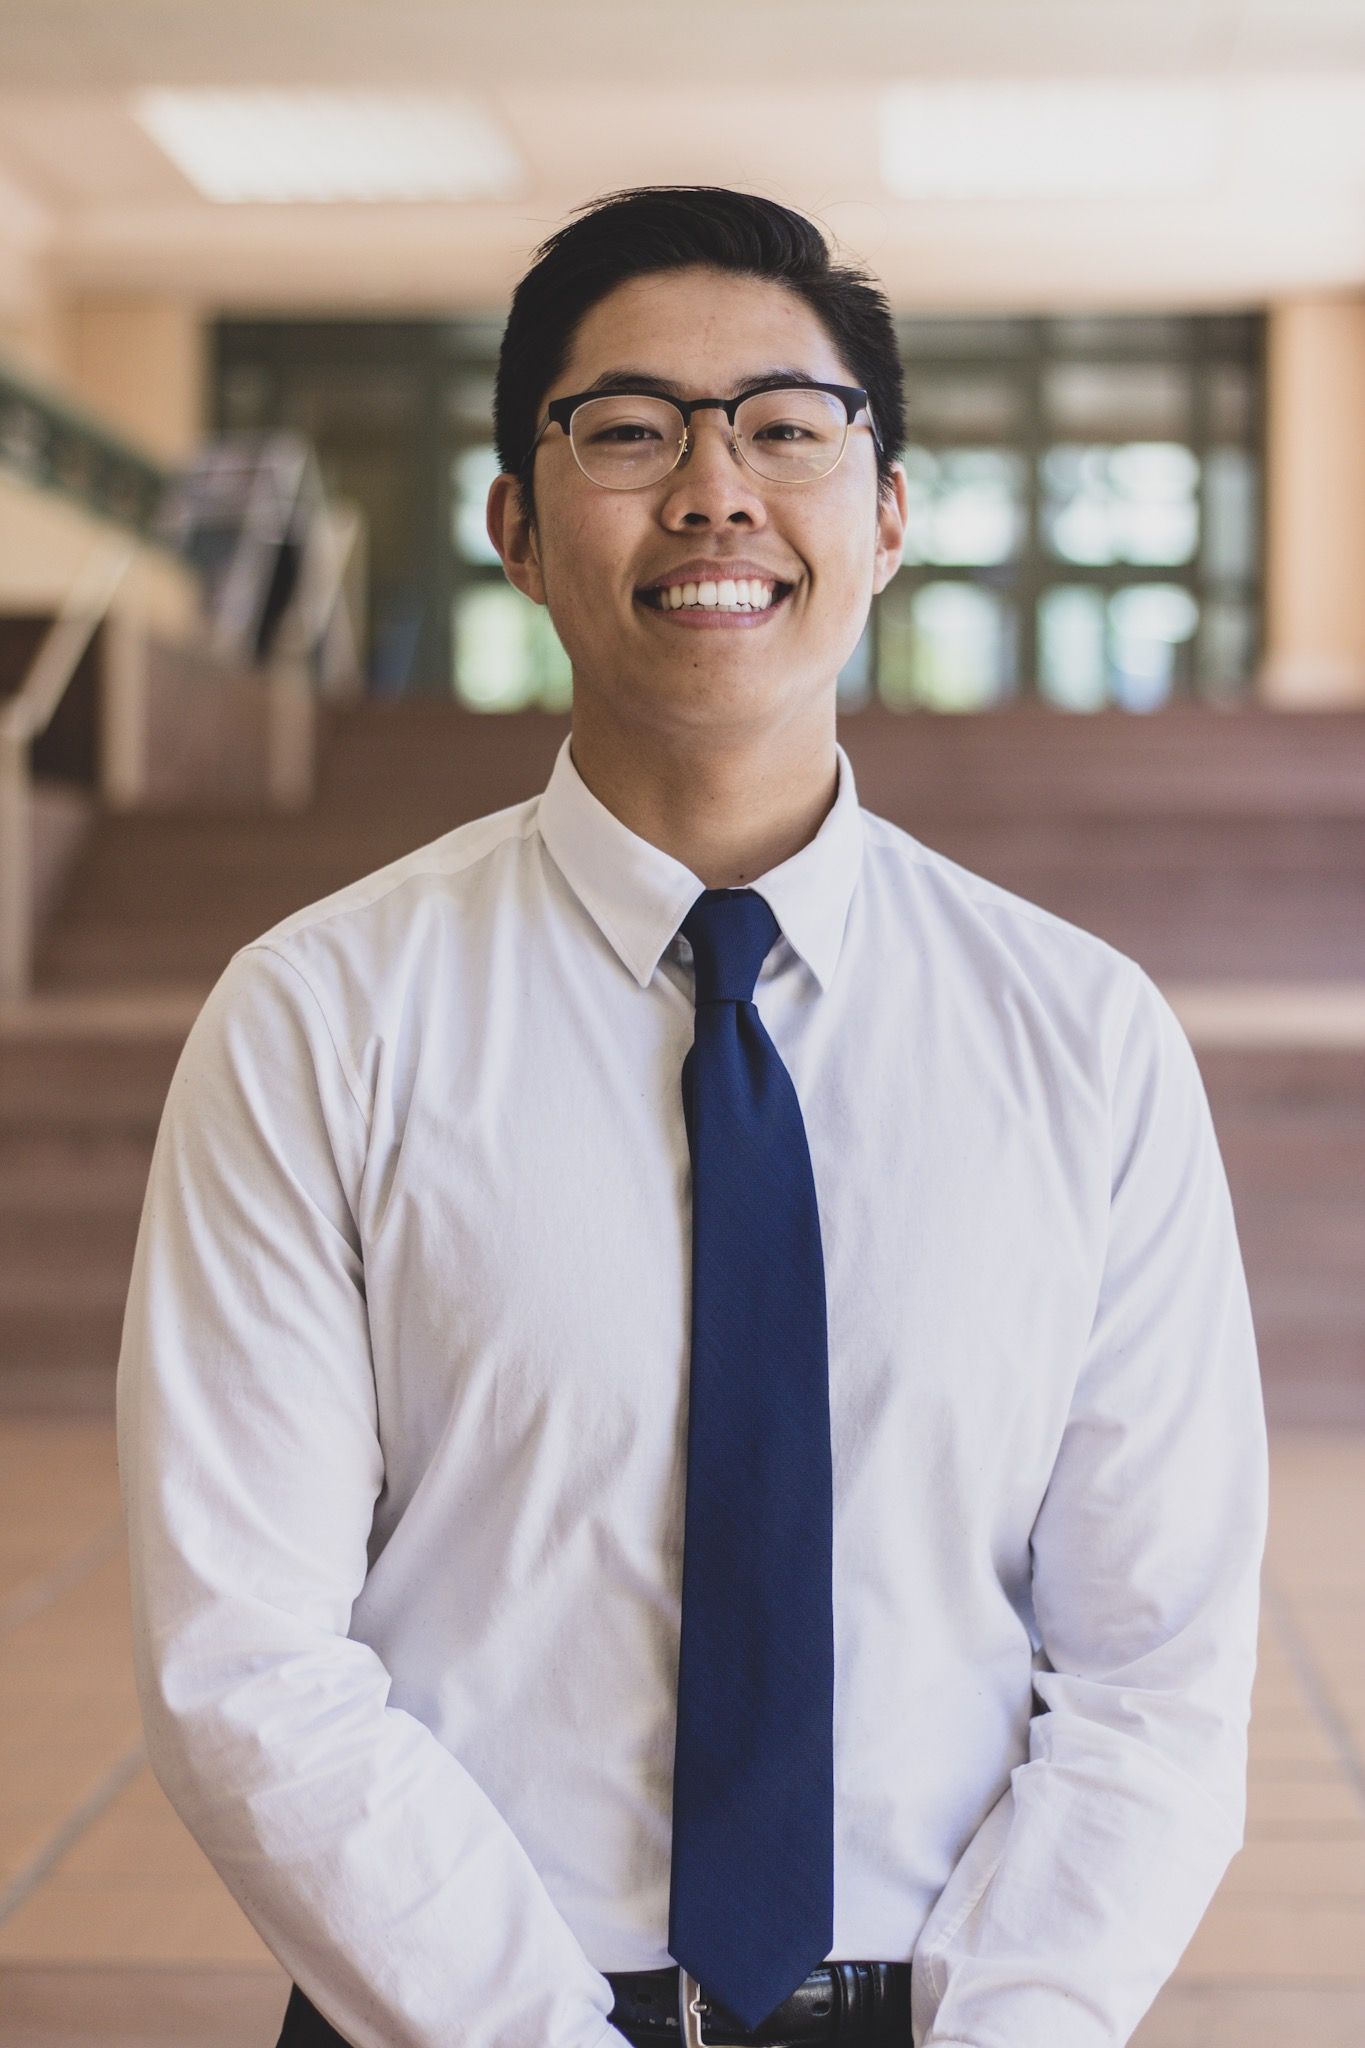 Ryan Untalan  Organizer  I joined Camp PolyHacks because I wanted to help with an event that promotes solving social issues through technological solutions.  I'm part of EPIC, Human Centered Design Club, and I'm a Facility Supervisor at the Rec Center.   LinkedIn